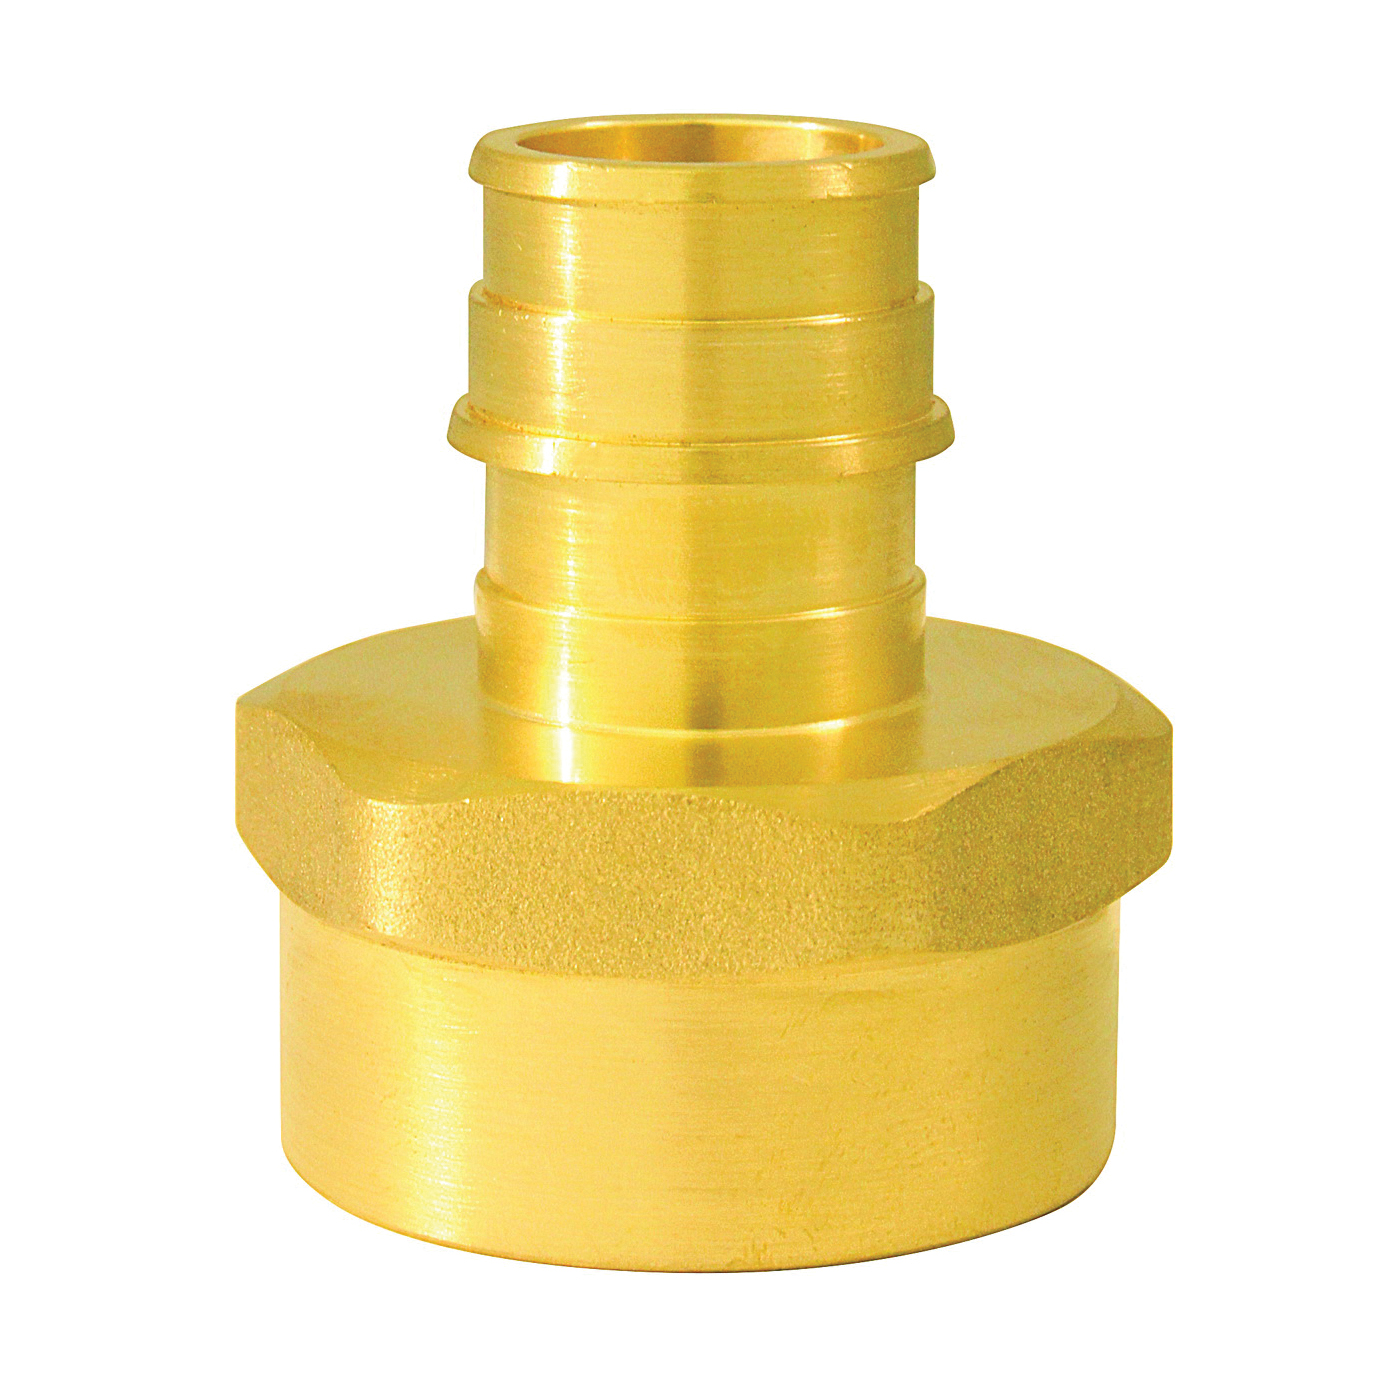 Picture of Apollo ExpansionPEX EPXFA341 Reducing Adapter, 3/4 x 1 in, Barb x FNPT, Brass, 200 psi Pressure